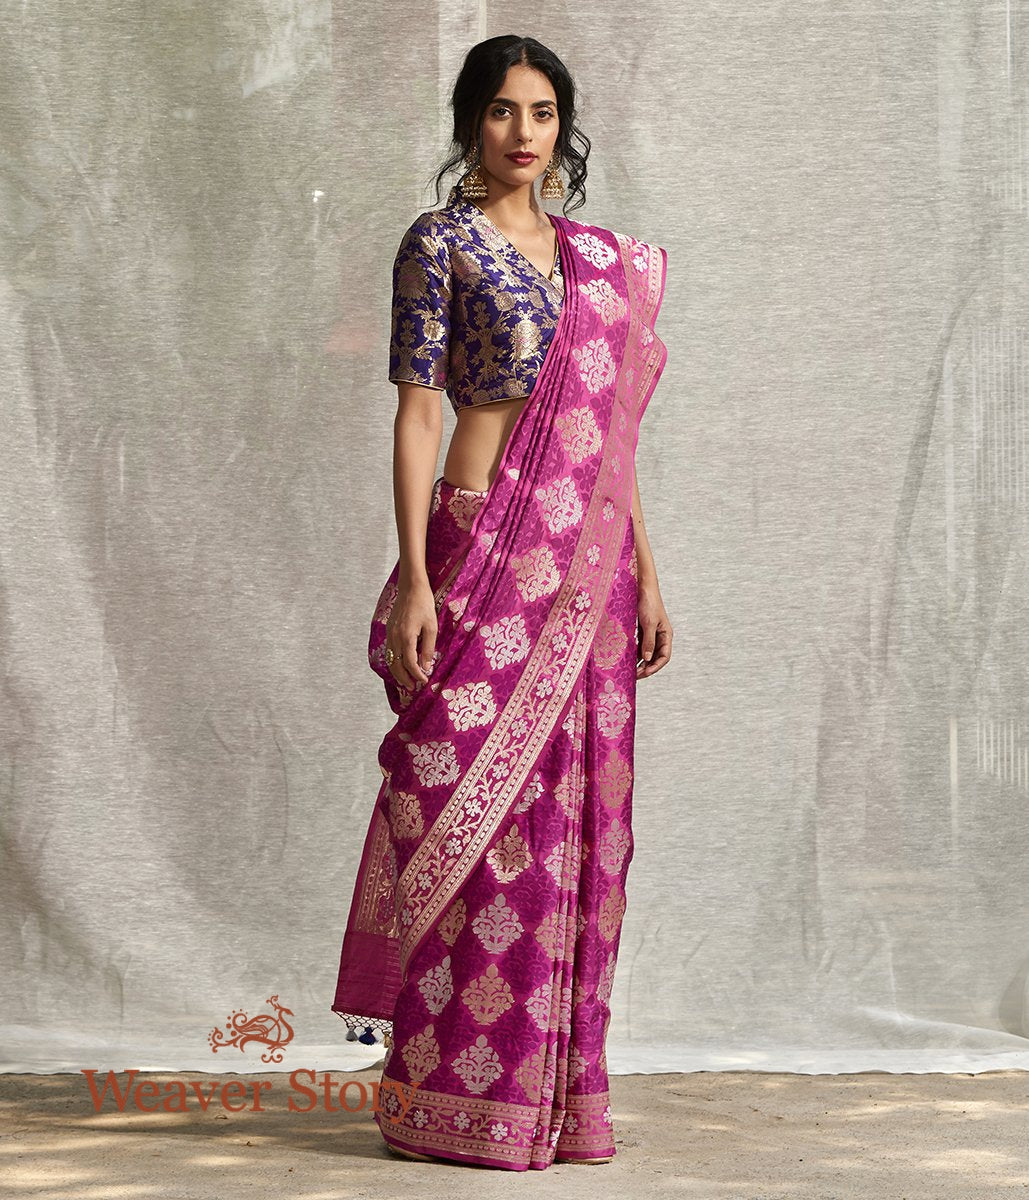 Handwoven Onion Pink Kadhwa Booti Saree with Gold and Silver Zari Booti